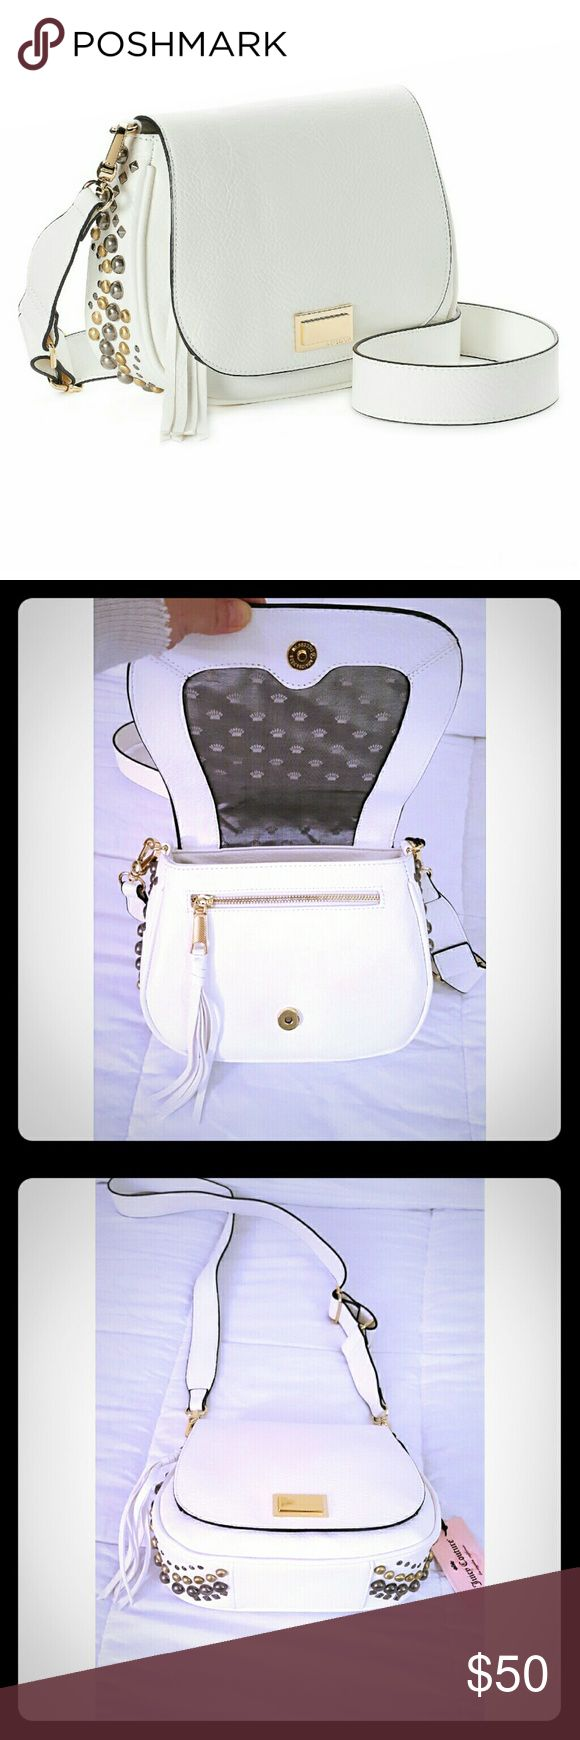 """NWT Juicy Coutur Sexy Crossbody/Clutch Saddle Bag New with tags gorgeous bright white Juicy Couture flap & snap closure Crossbody, Shoulder or clutch saddle bag. The long strap can adjust as short as you want to about 26"""" long. Or unhook & hold it like a clutch. Features gold emblem on the front, fringe zipper pull, back outside pocked, interior zip pocket & 2 pouches. And the studded gold & silver detail along the sides & bottom completes this beautiful bag. 10""""w 8"""" h 3"""" d NO TRADE. PRICEC…"""